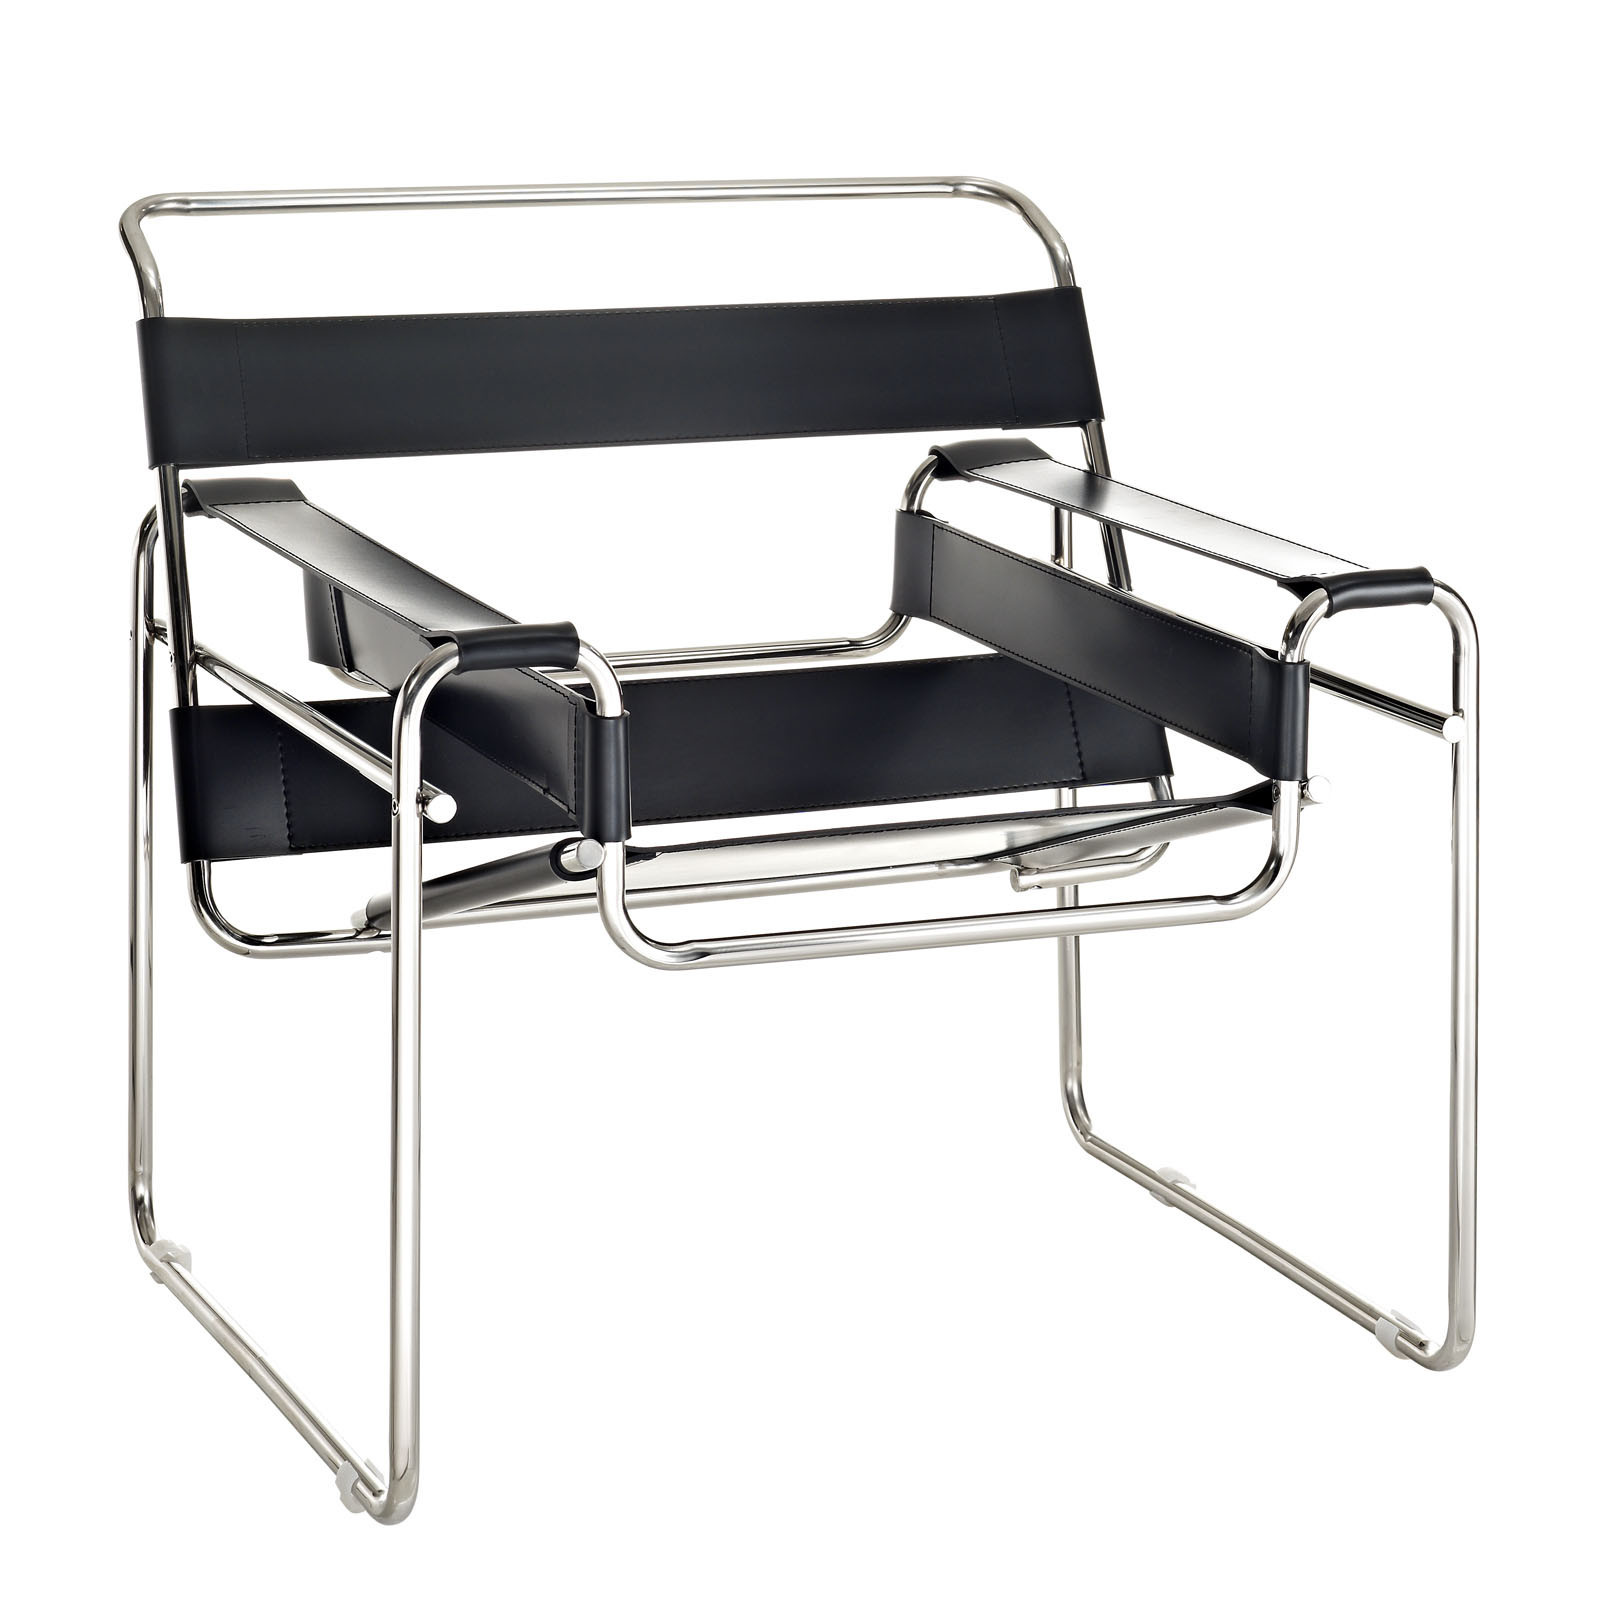 Unique Wassily Chair Reproduction  HomesFeed